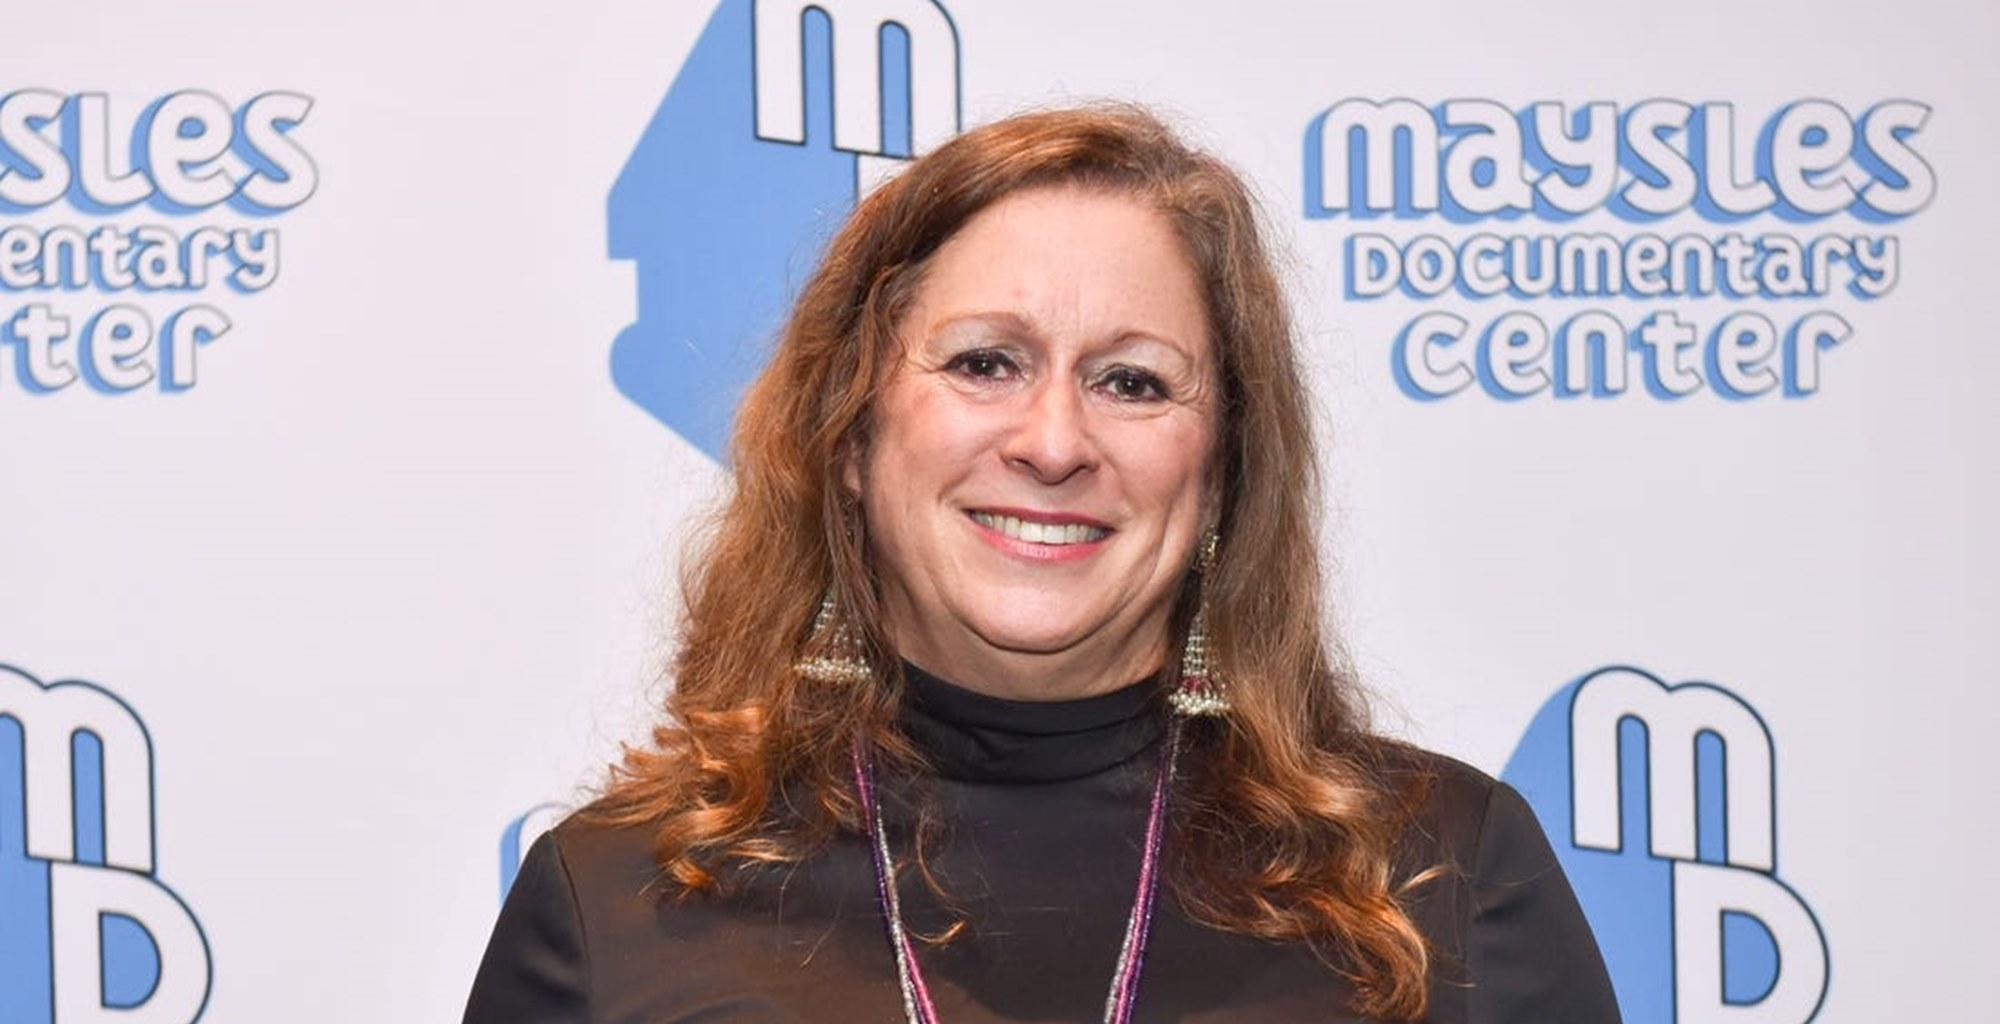 Abigail Disney Is Bashed For Bad-Mouthing Kobe Bryant After His Death And Not Taking The Pain Of His Wife, Vanessa Bryant, And Their Children Into Account